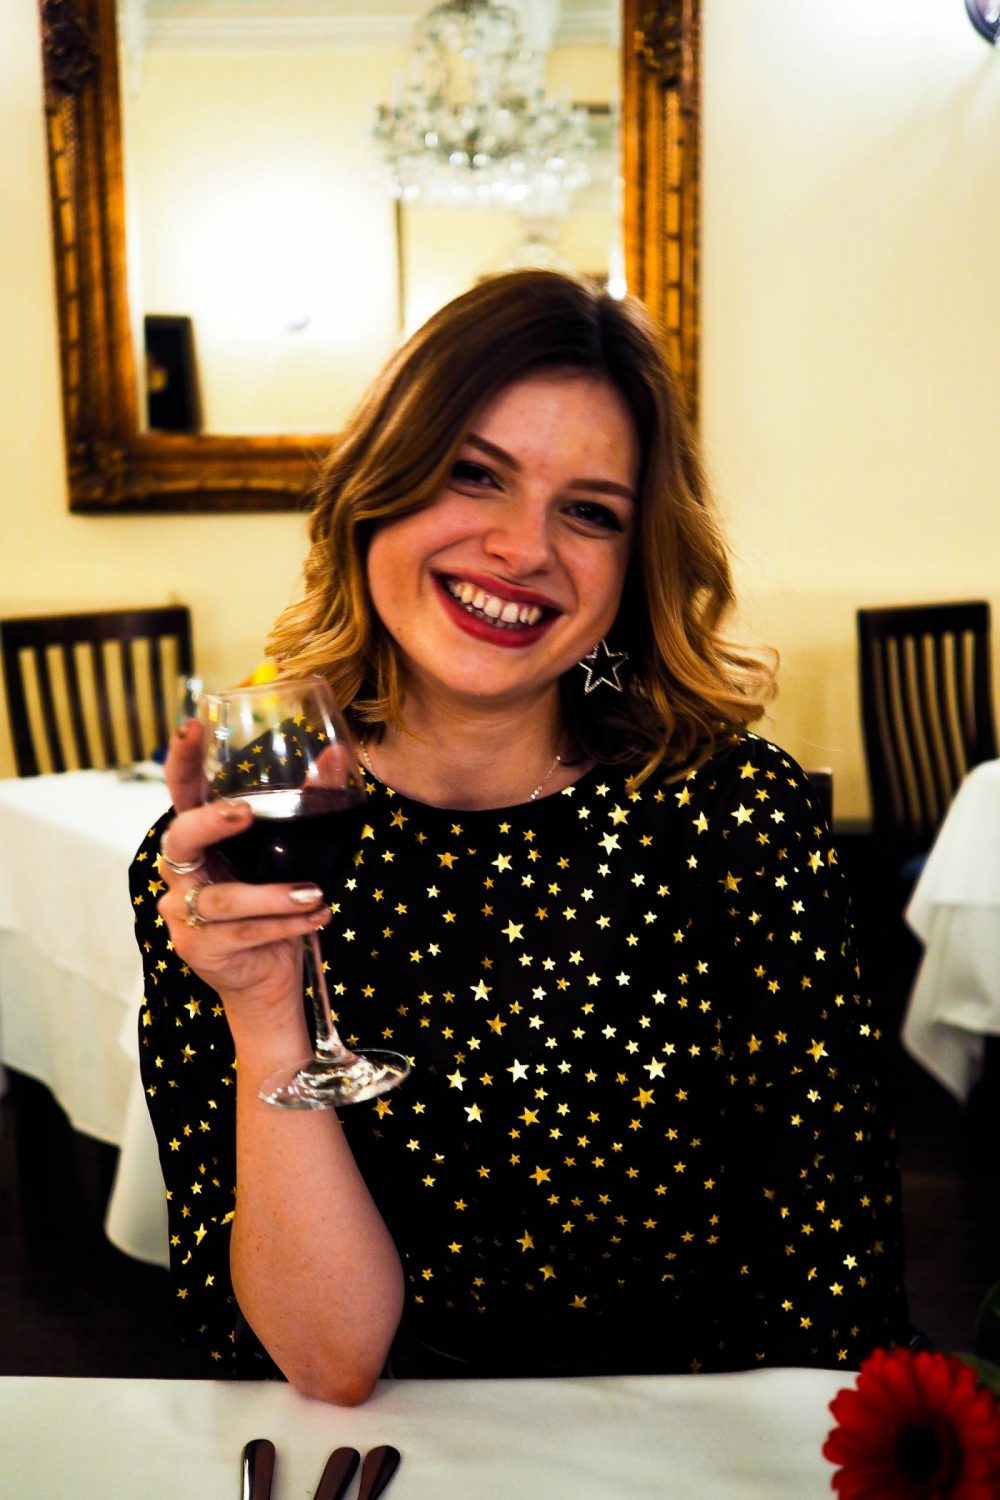 Sophie holding a glass of red wine in the Nightingale Restaurant at Nanteos Mansion